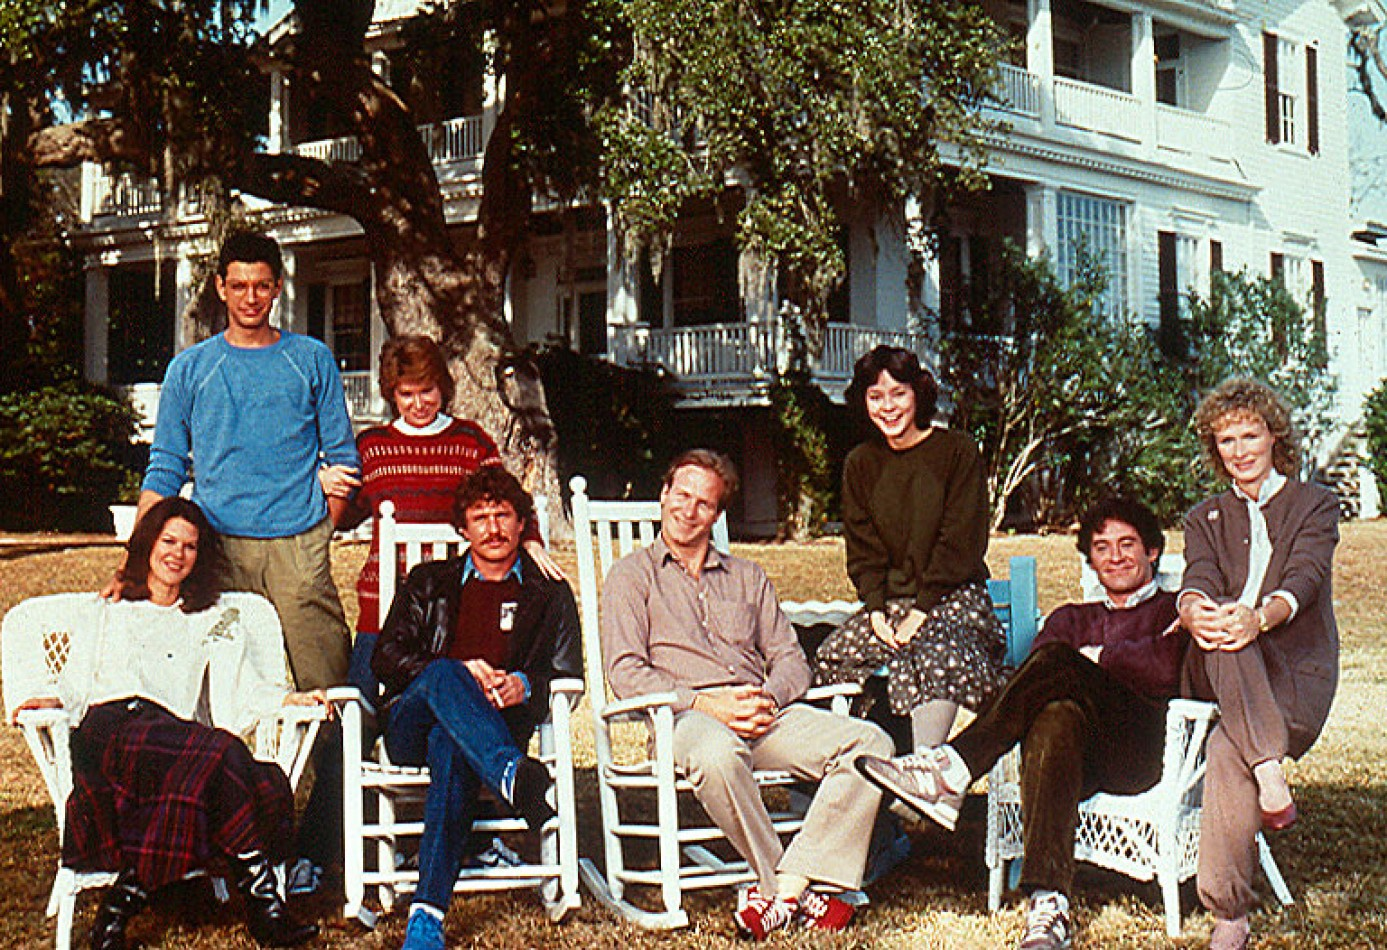 In 1983, Tidalholm was the setting of the film The Big Chill, with an all star cast including glenn close, Kevin Klein, Jeff Goldblum, William Hurt and Tom Berenger.